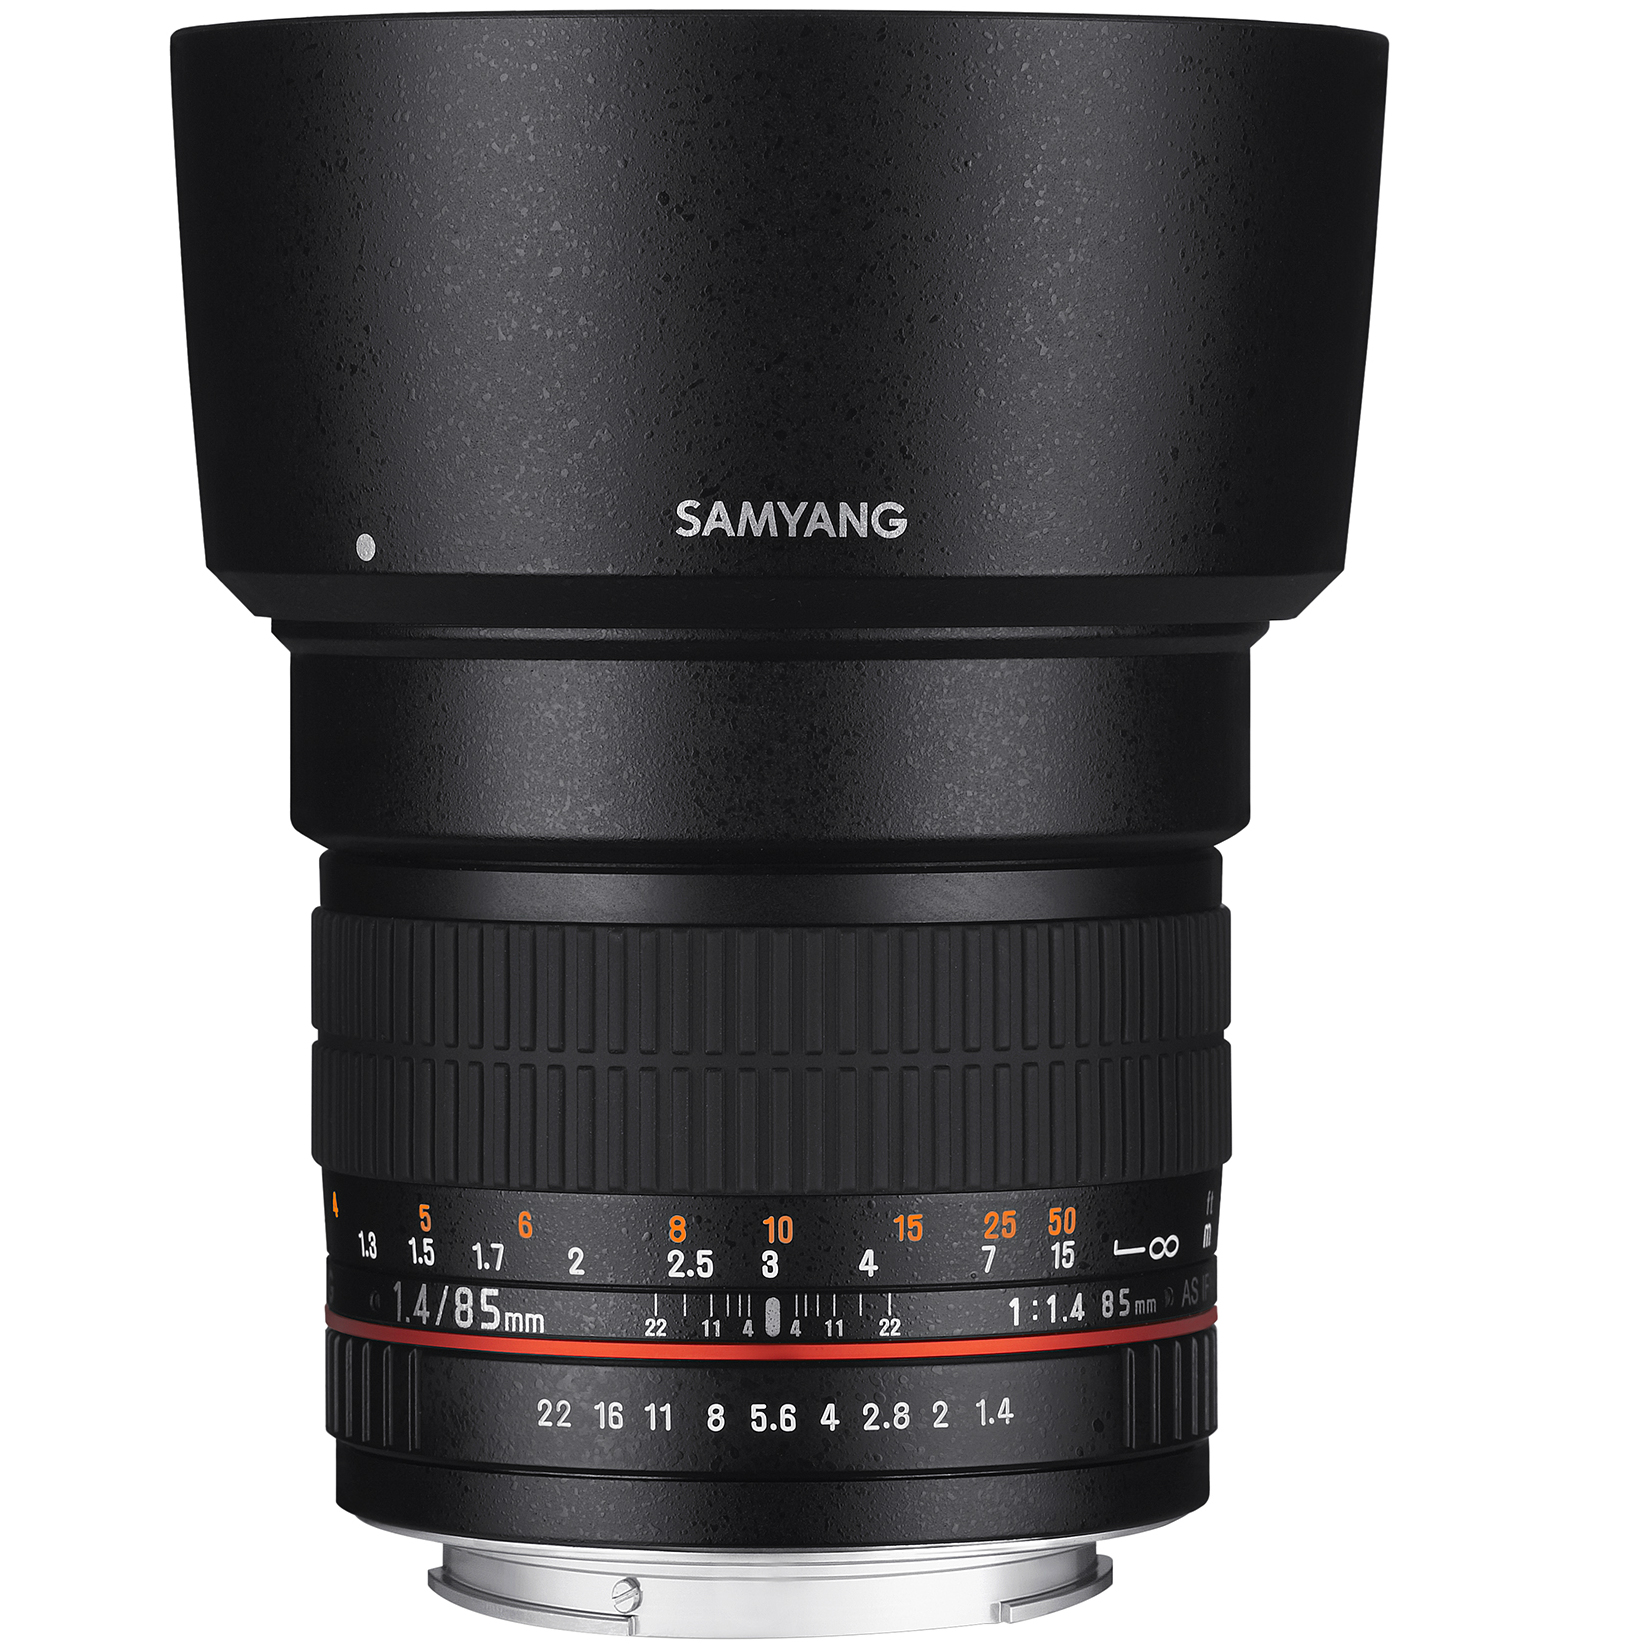 Image of Samyang 85mm f/1.4 AE Lens For Nikon Mount